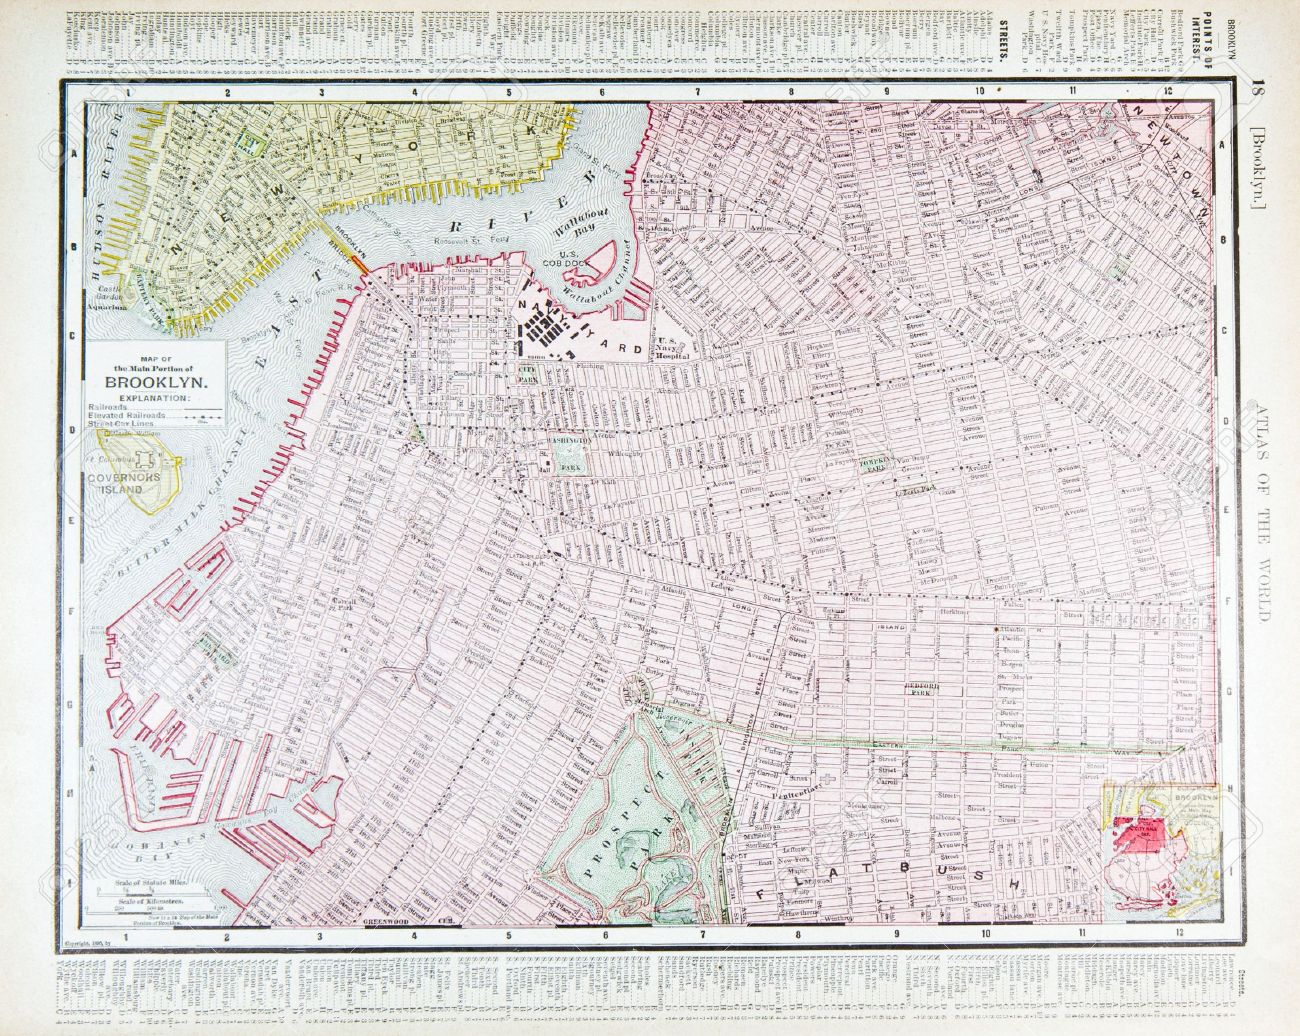 Vintage Street Map Downtown Brooklyn New York NY 1900 Stock Photo